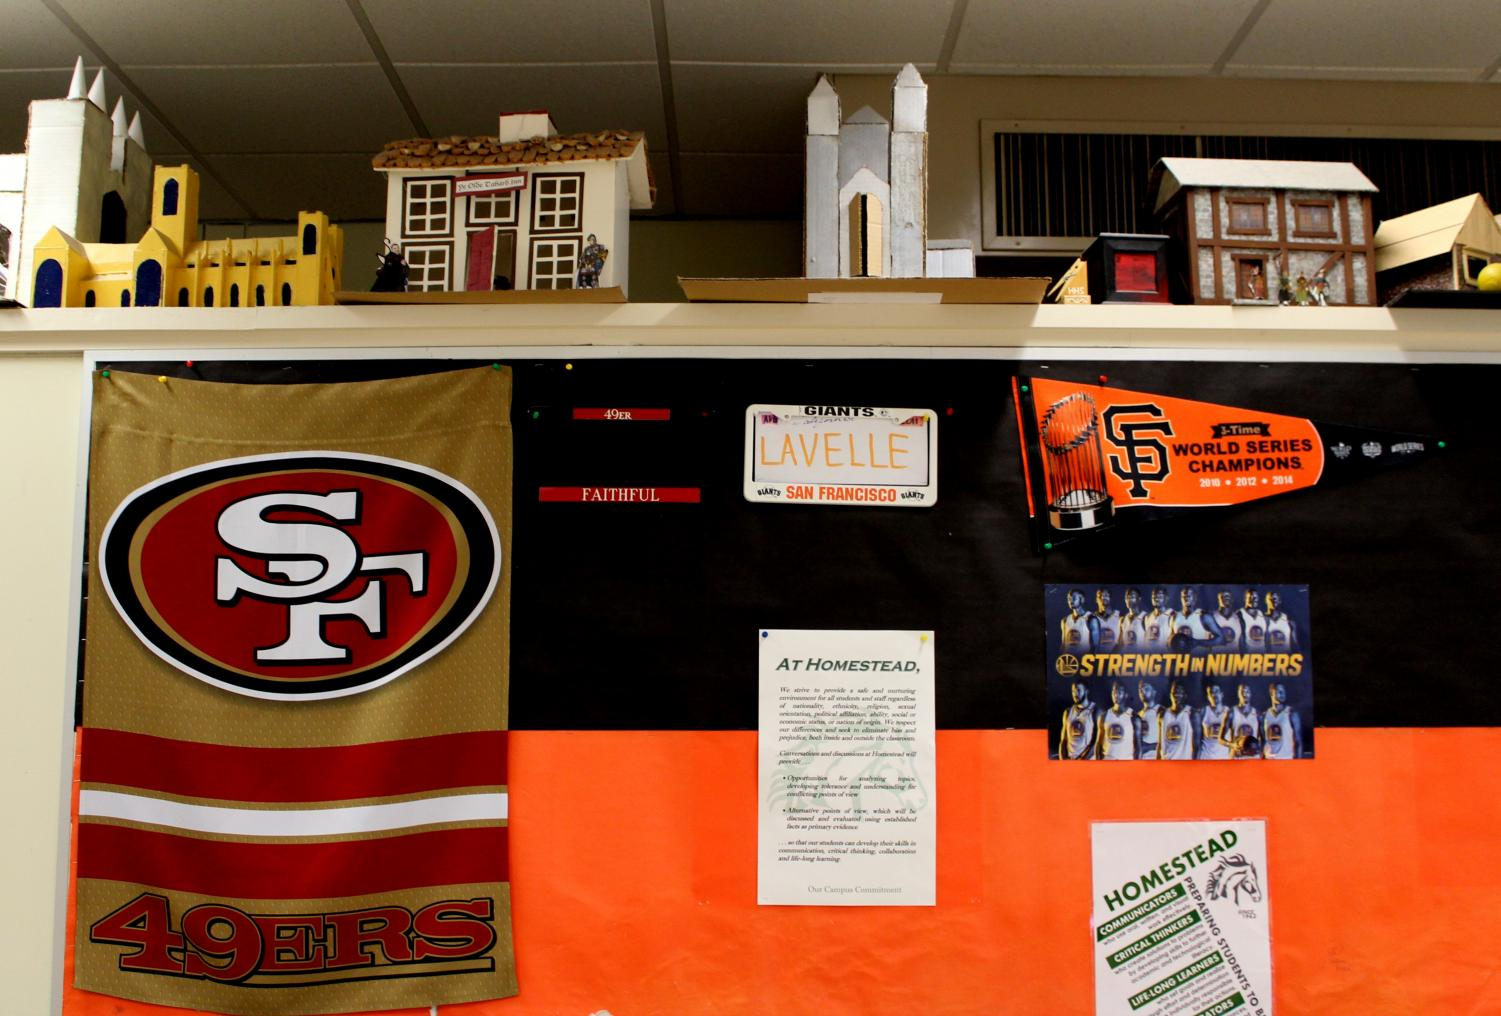 %E2%80%9COver+here+is+where+I+keep+my+personal+stuff+in+terms+of+being+a+Warriors+fan%2C+Giants+fan+and+49ers+fan.+I+did+know+Kim+Nuestro.+Actually+for+Kim+Night%2C+I+was+there+for+that+and+spoke.+She+was+a+big+Warriors+fan.%E2%80%9D+-Steve+Lavelle